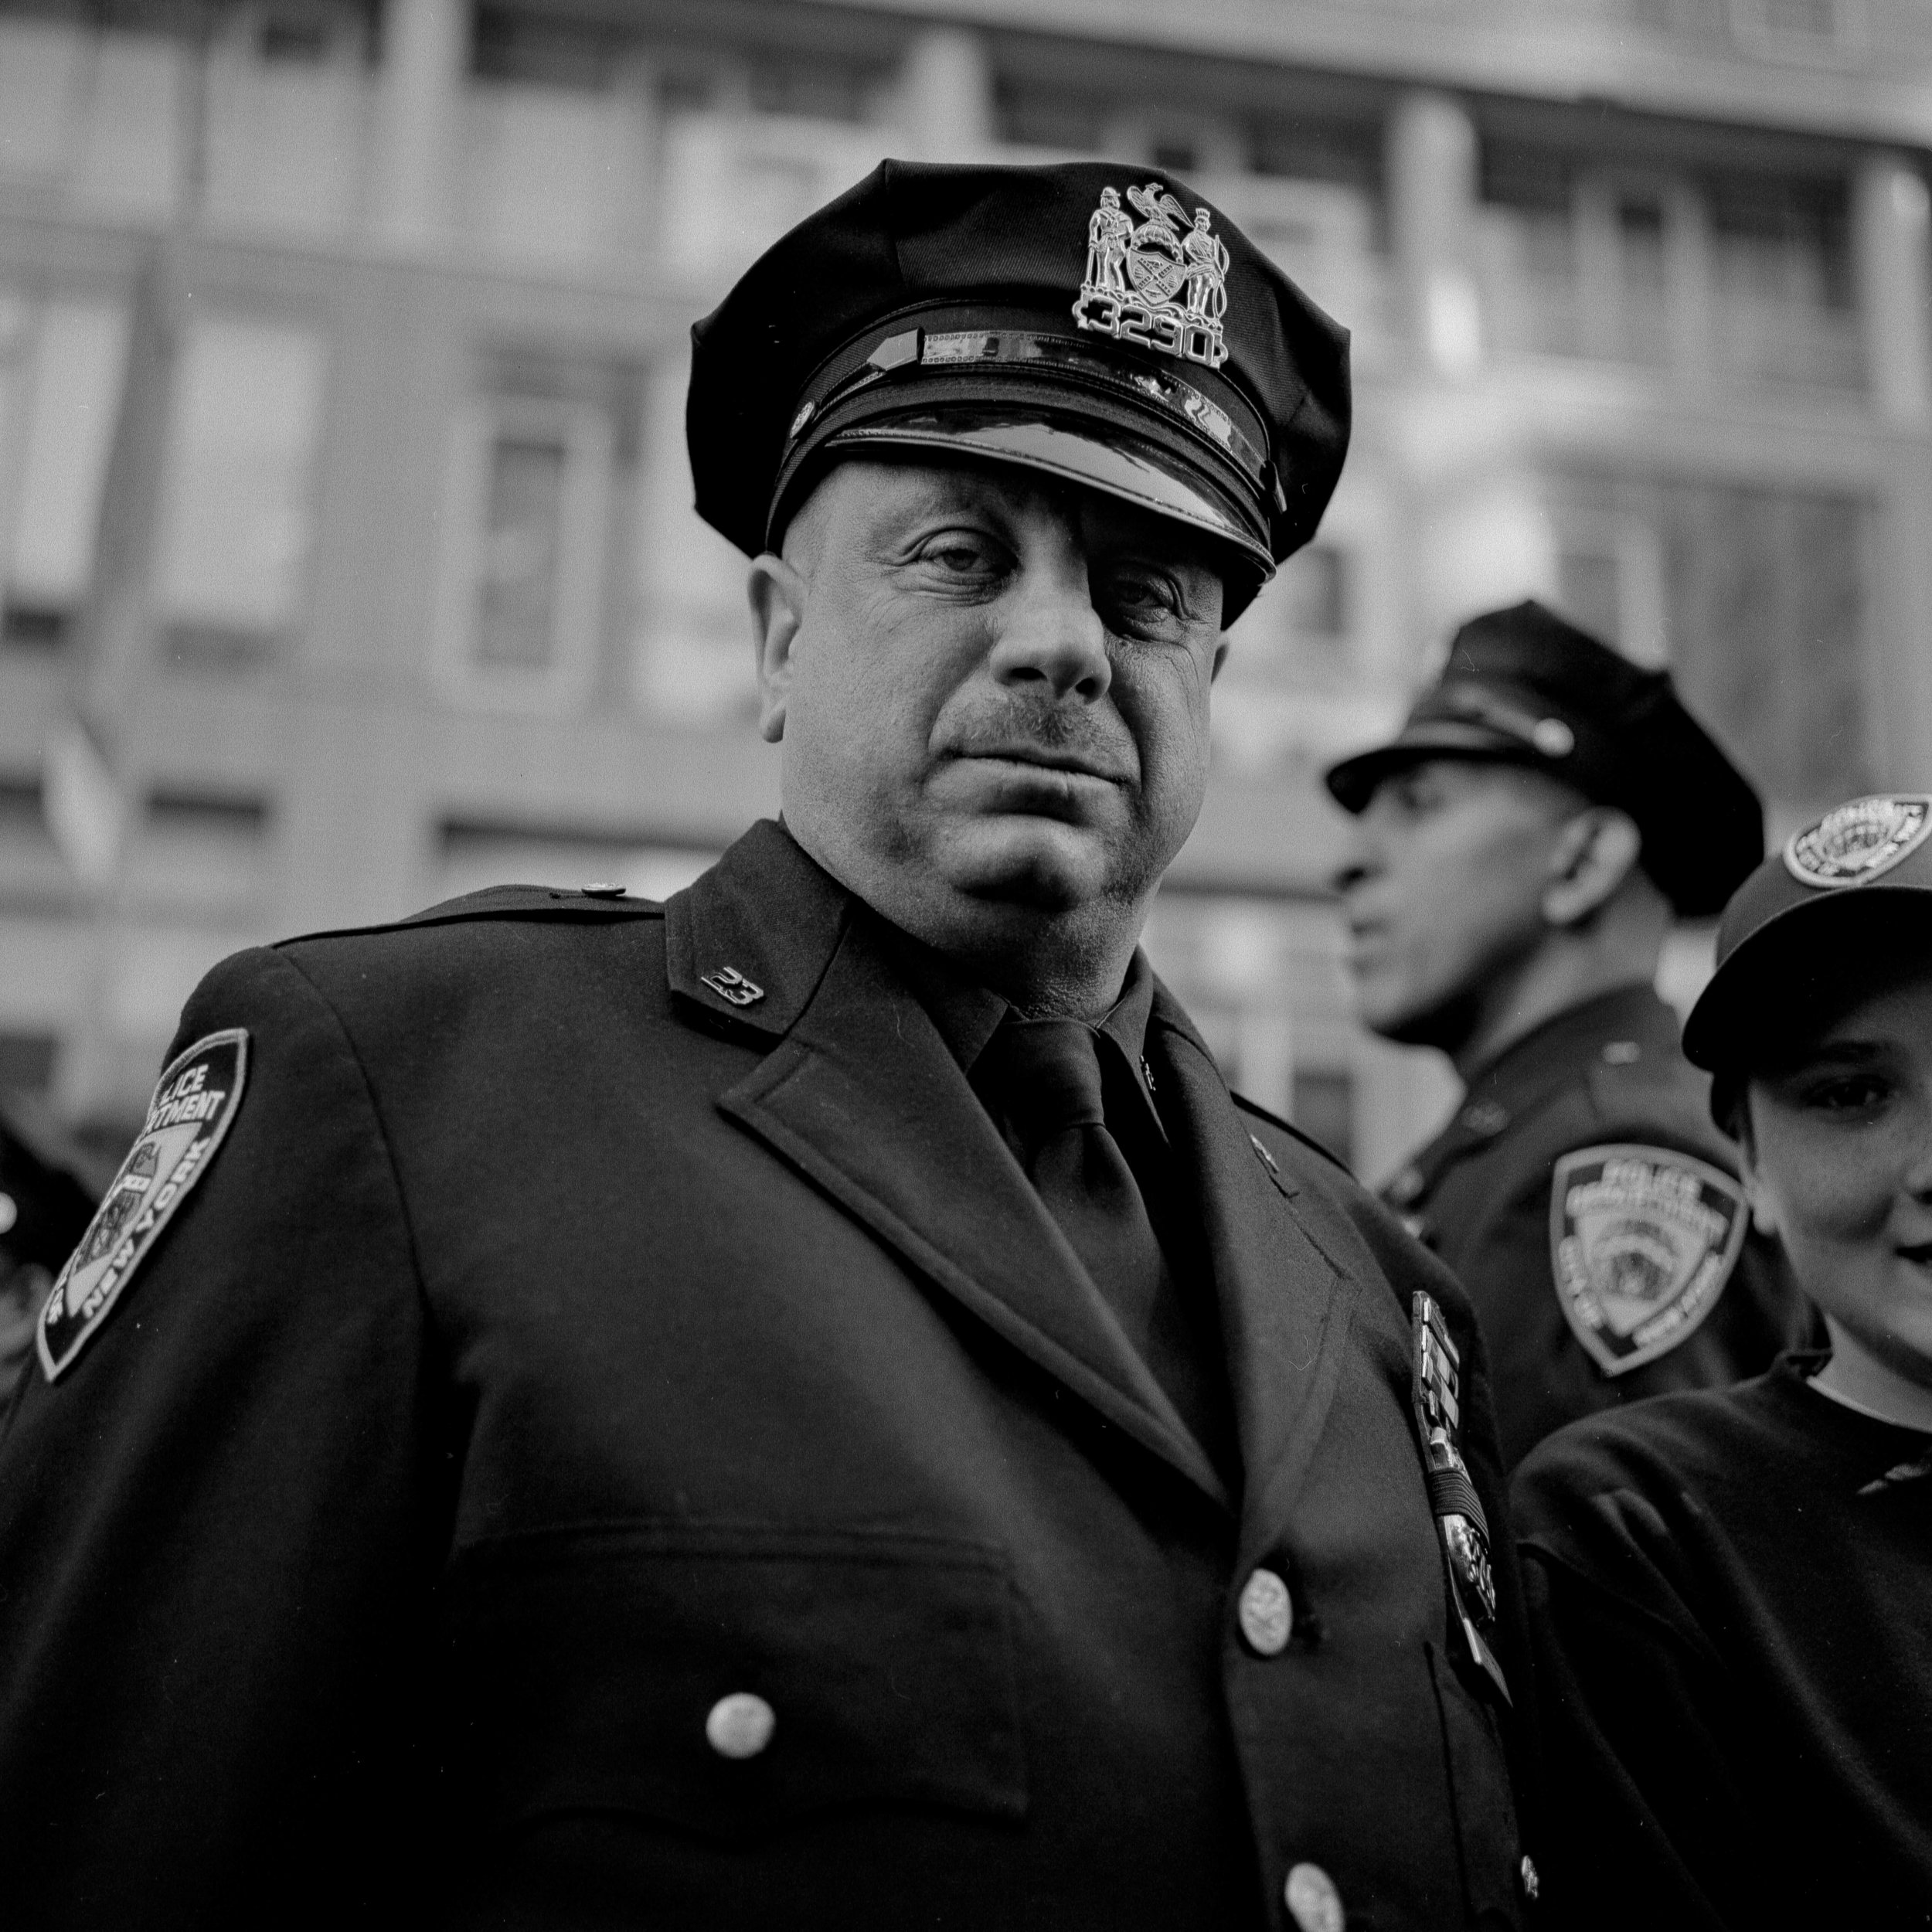 NYPD - 2016